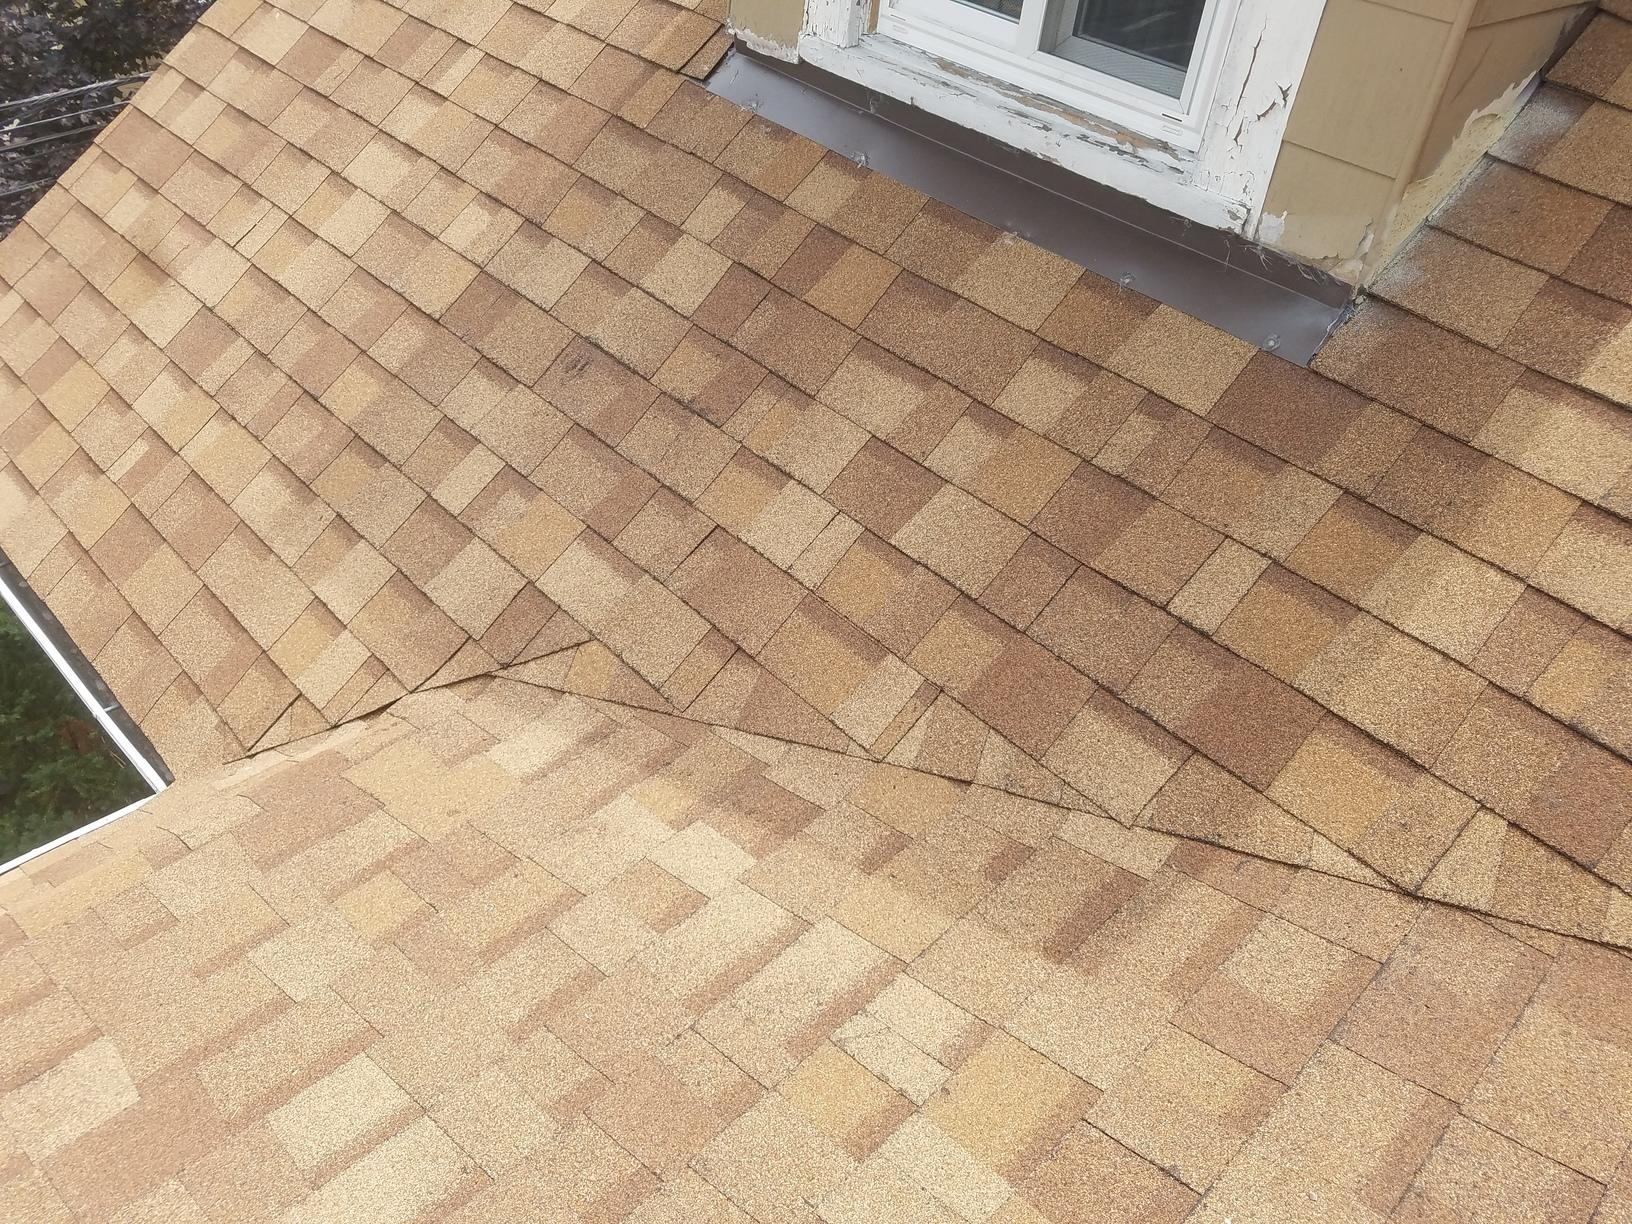 Owens Corning Desert Tan Duration Shingle Installation in Bloomfield, NJ - After Photo